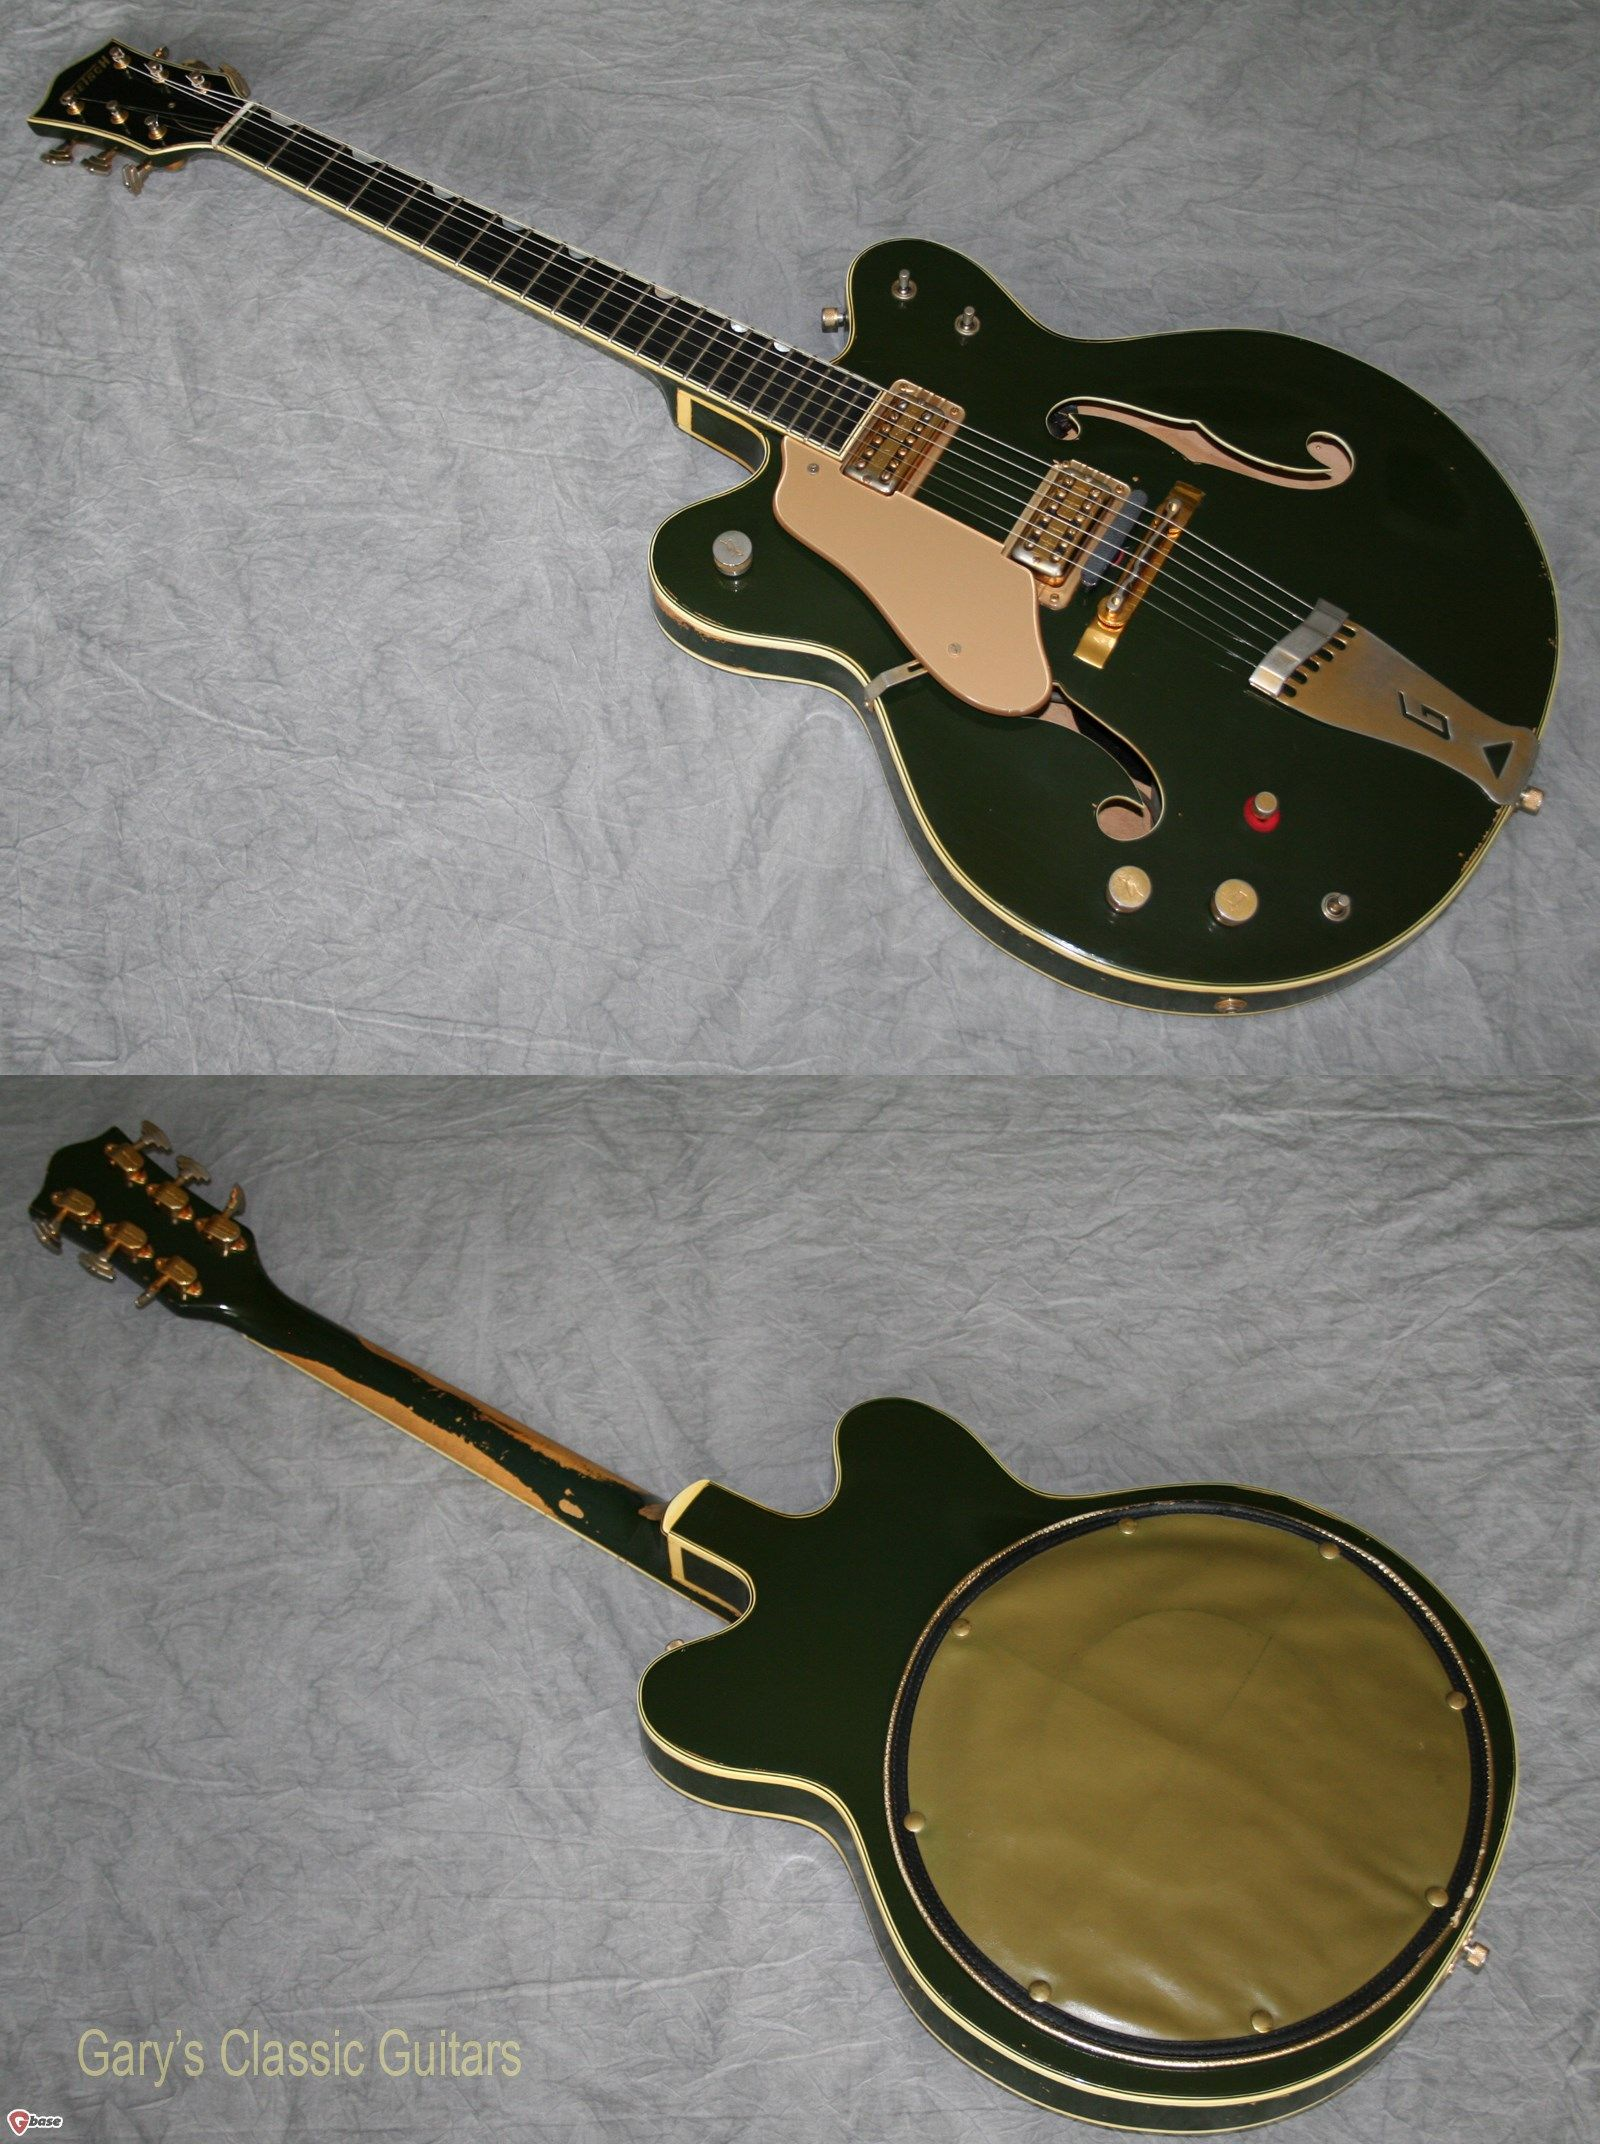 0a70404cbf 1962 Gretsch Country Club, Ultra Rare Left handed, Cadillac Green, Double  cutaway, Gold hardware, Two Filtertrons, Grover imperial tuners,